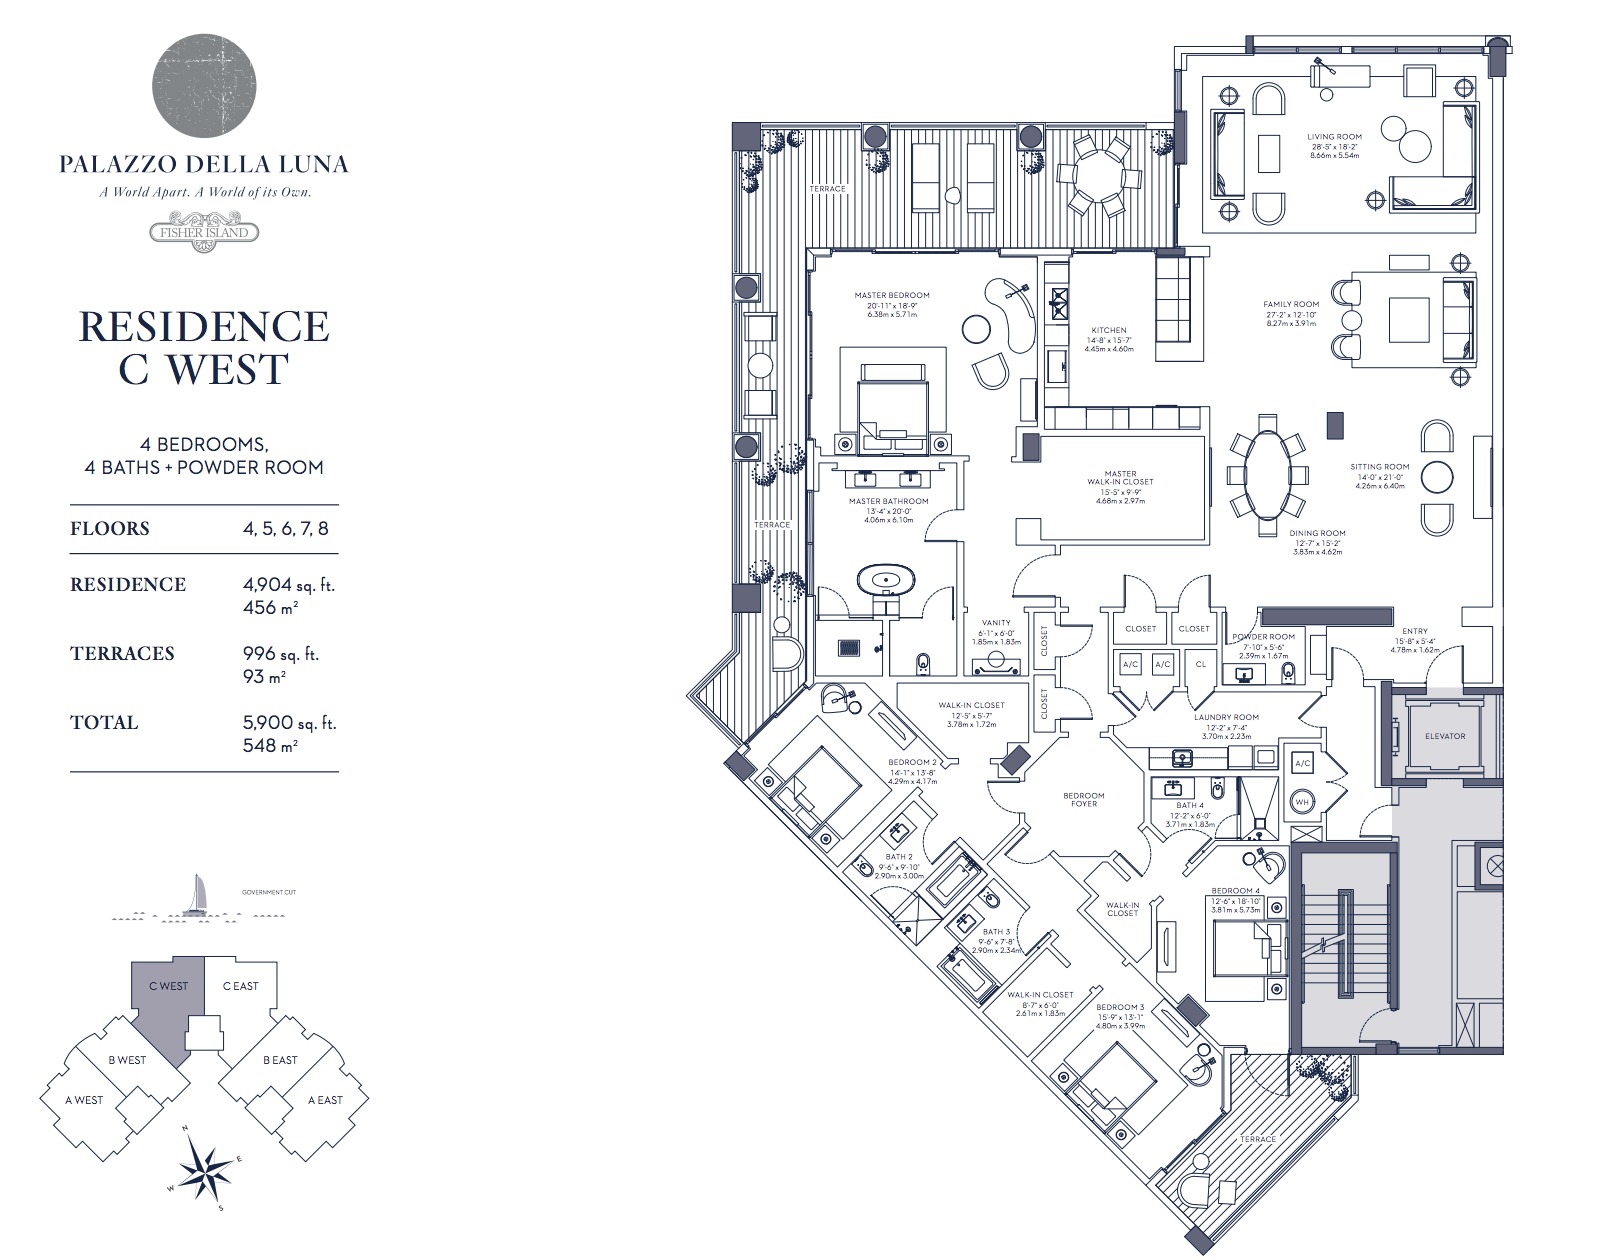 Palazzo della Luna| Residence C West Floors 4,5,6,7 and 8